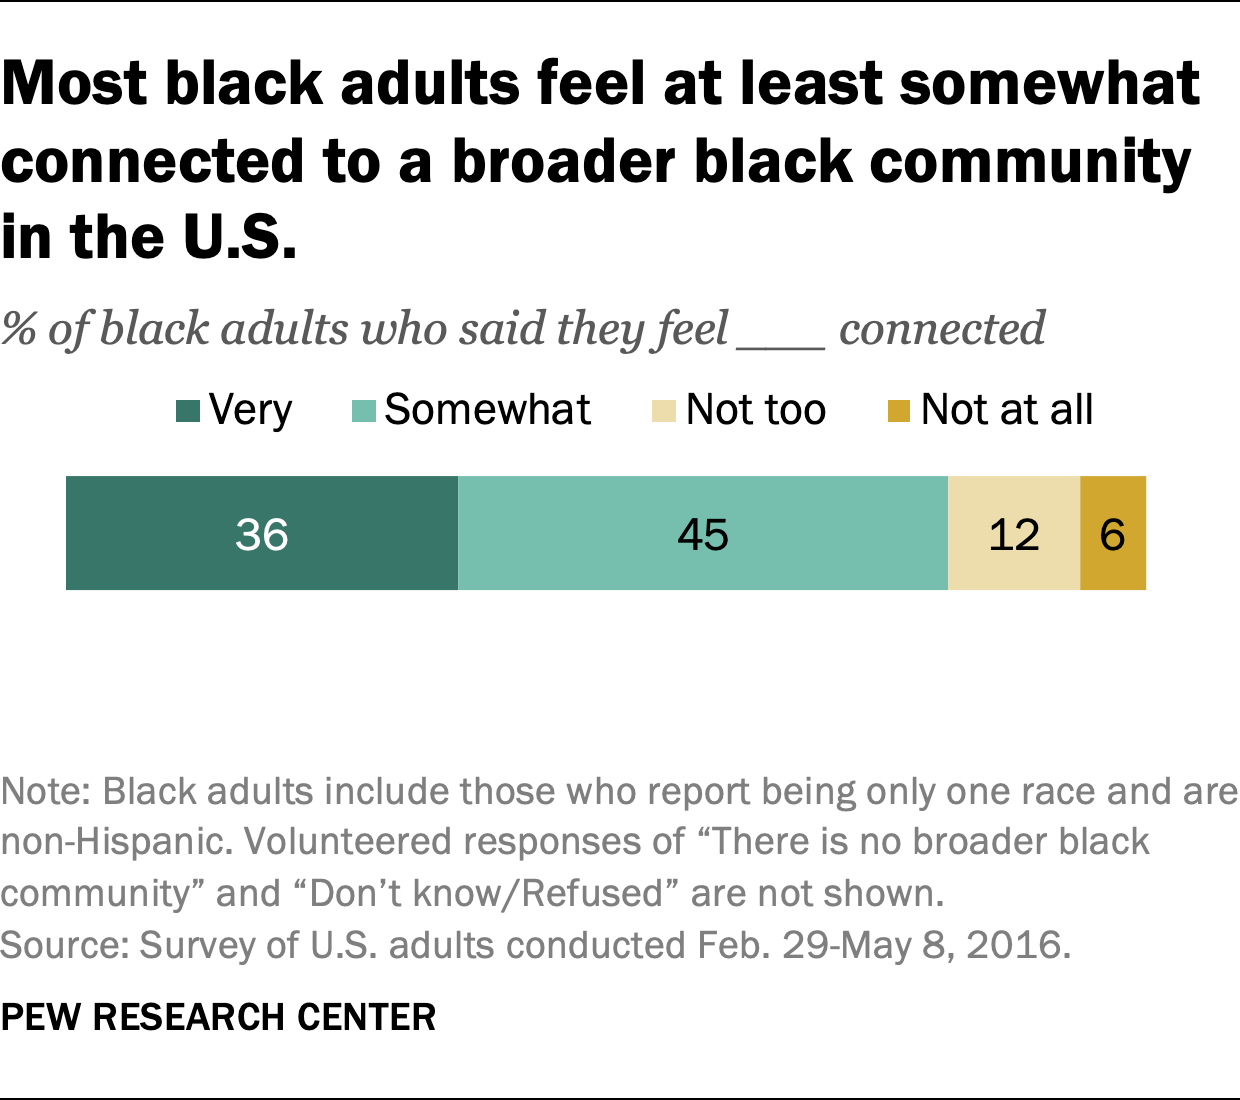 Most black adults feel at least somewhat connected to a broader black community in the U.S.